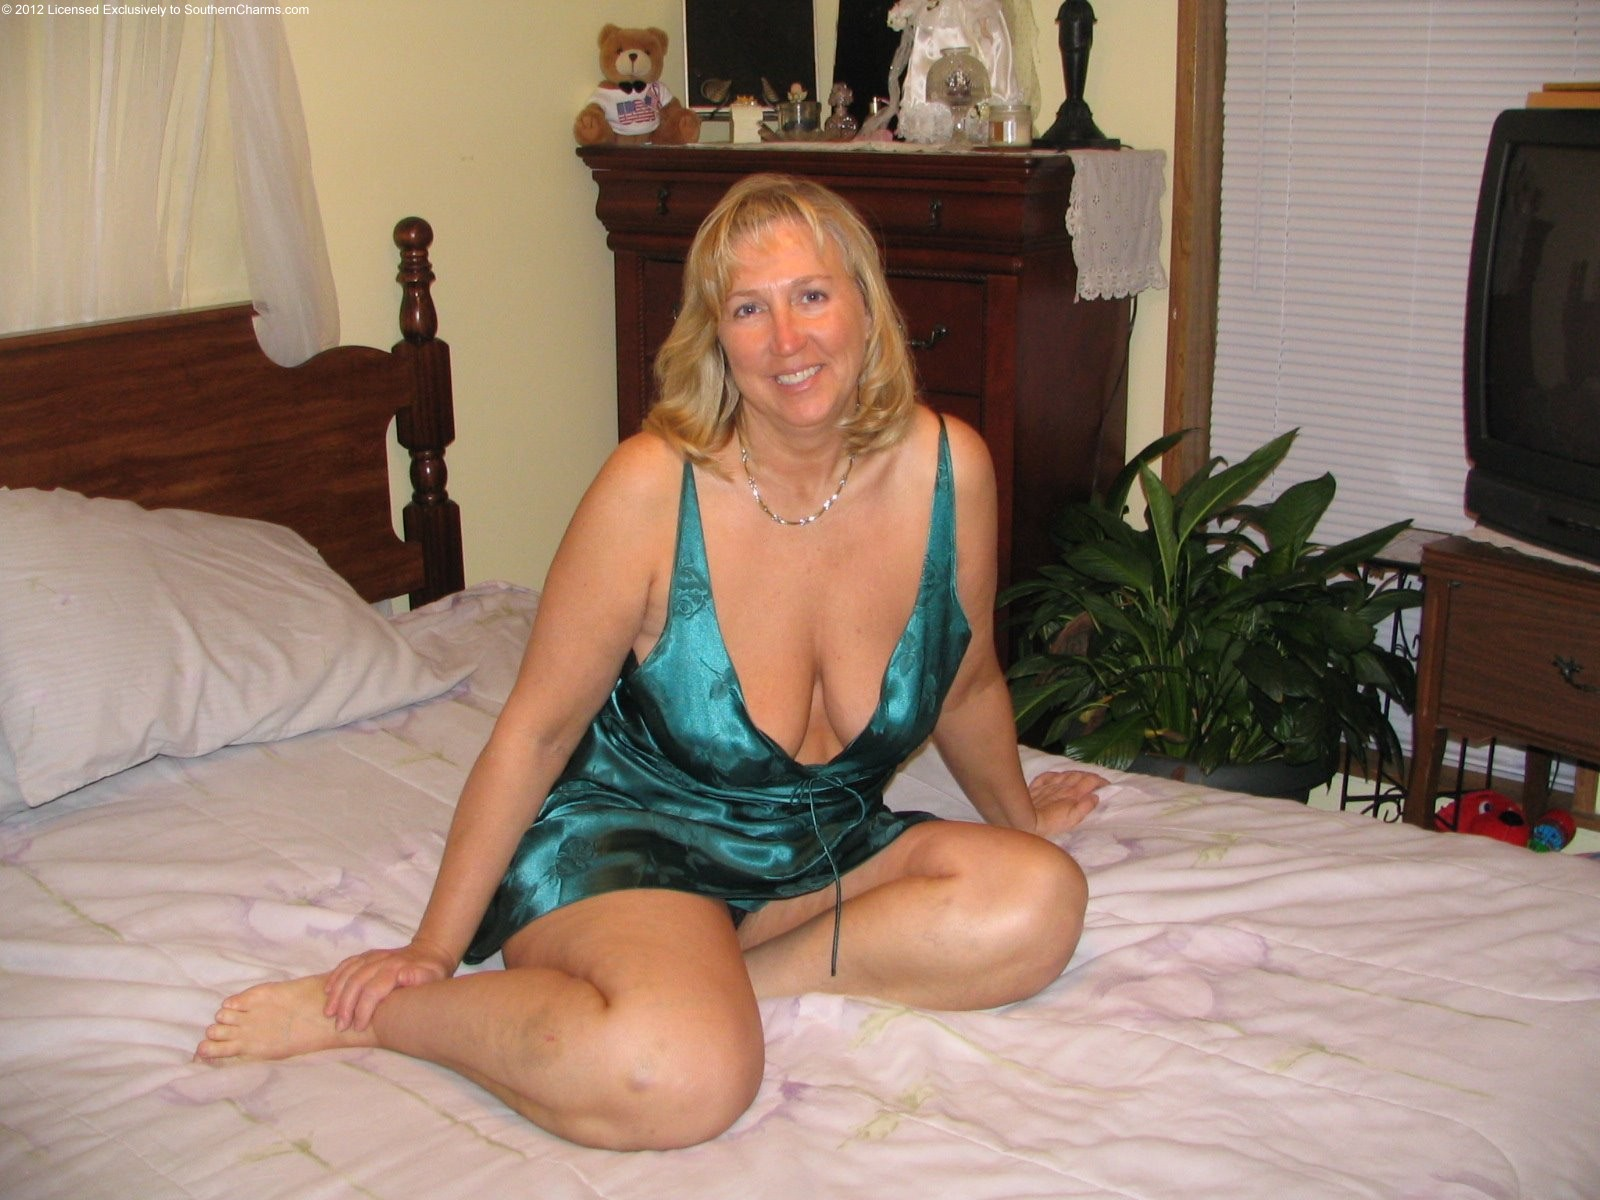 62 year old women undressing homemade